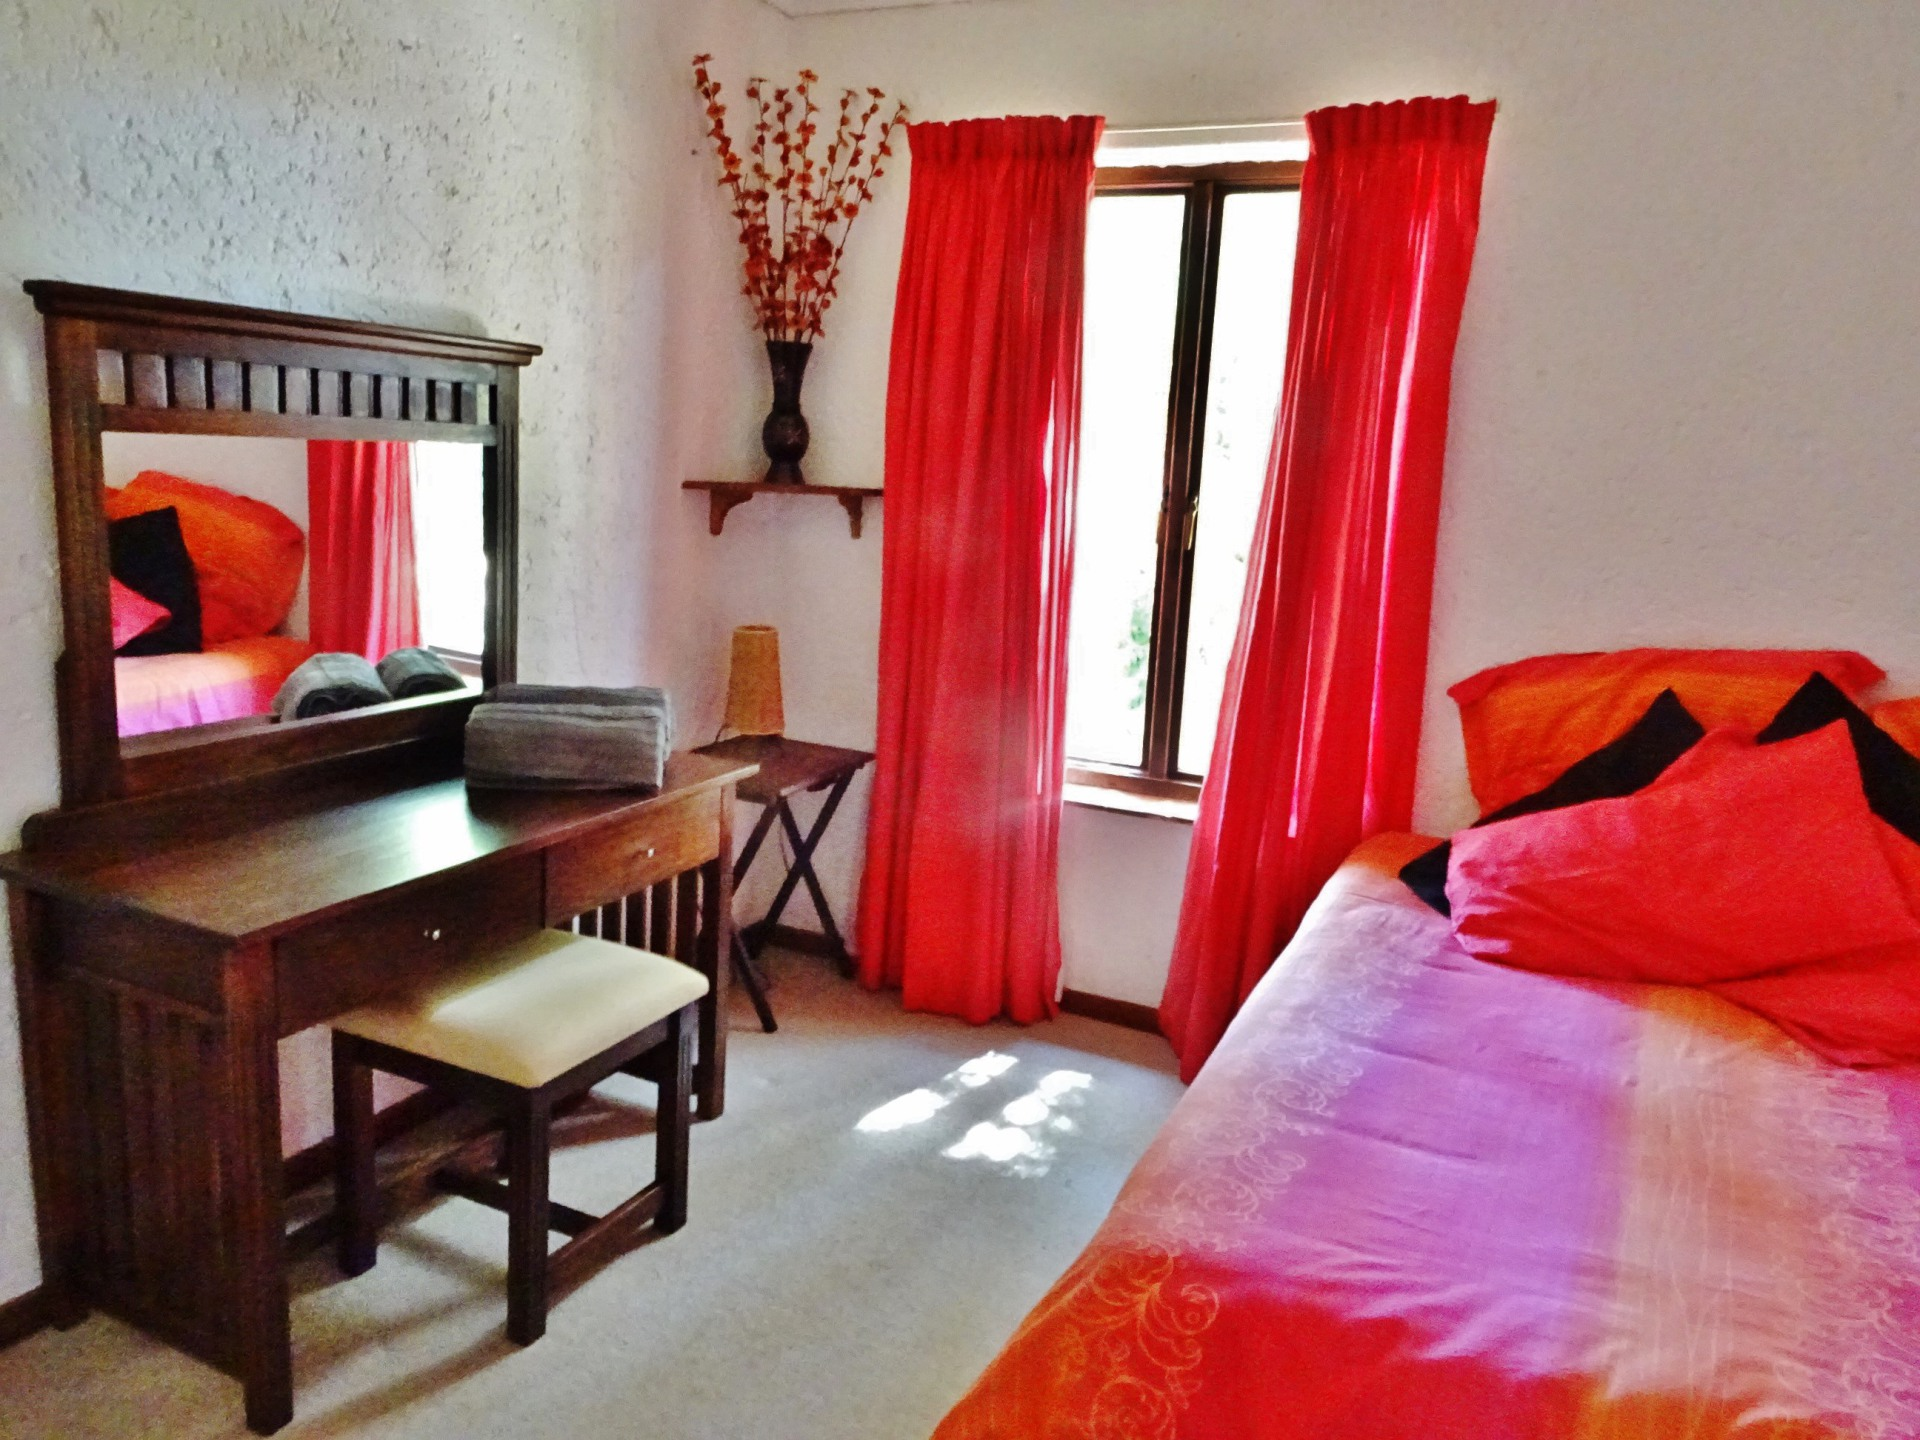 Red room with Queen  size bed - Accommodation Hartbeespoort dam